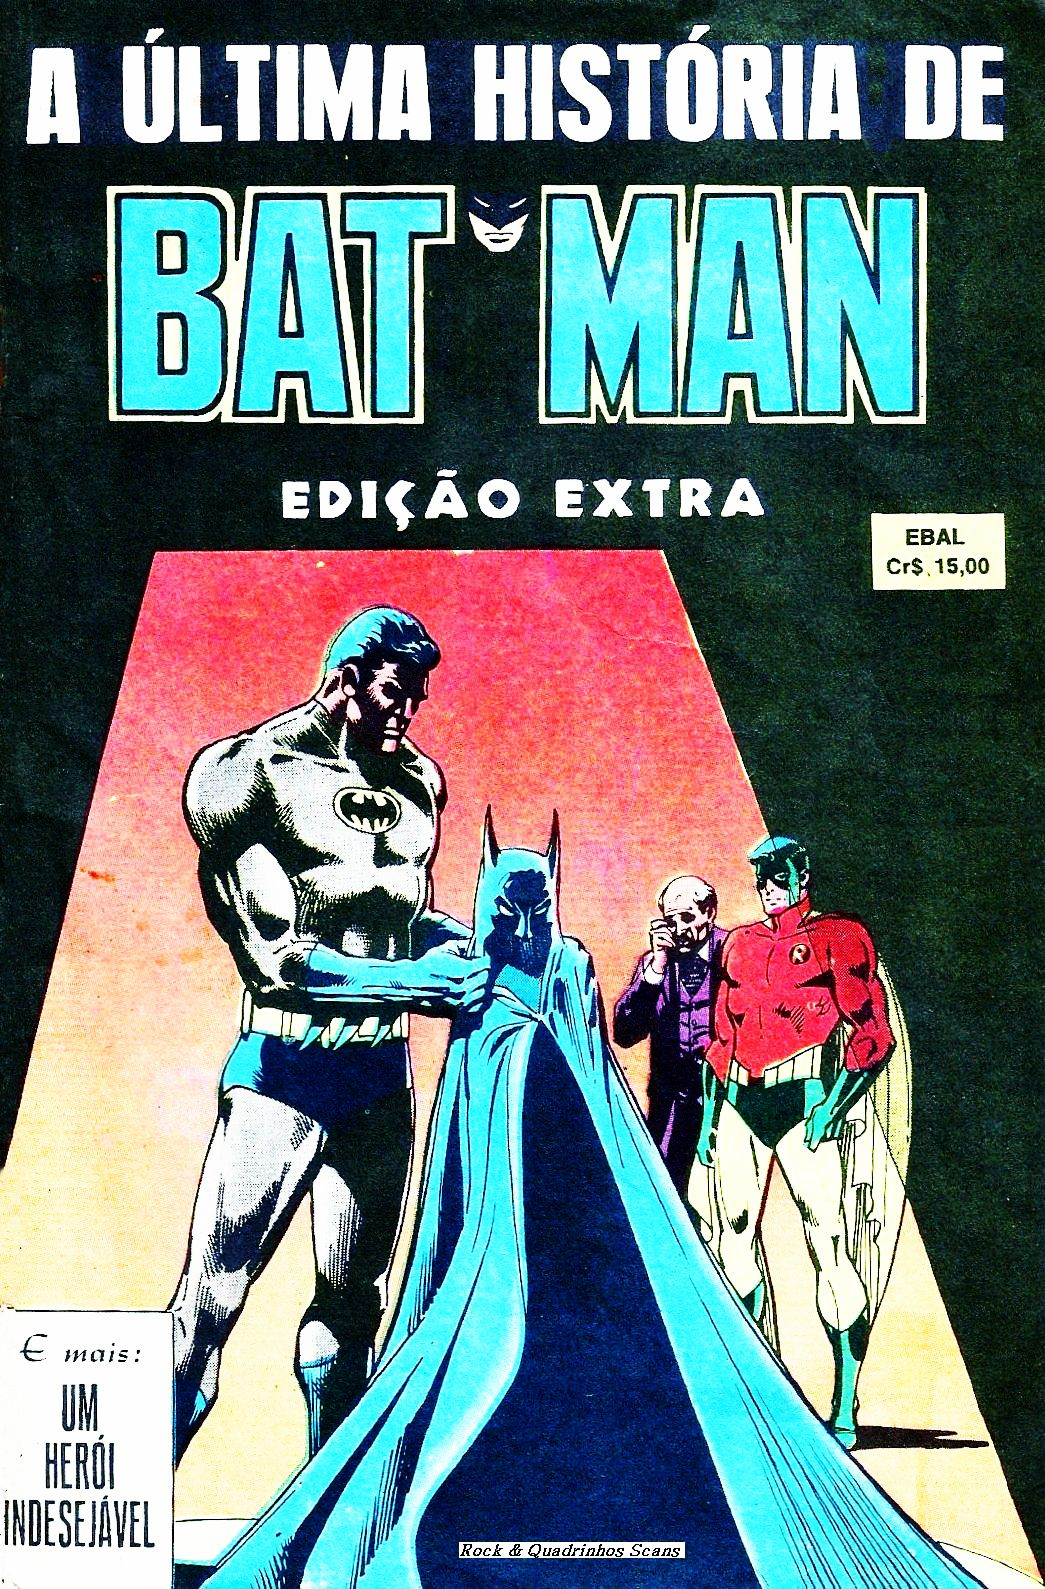 A ultima historia do batman - capa